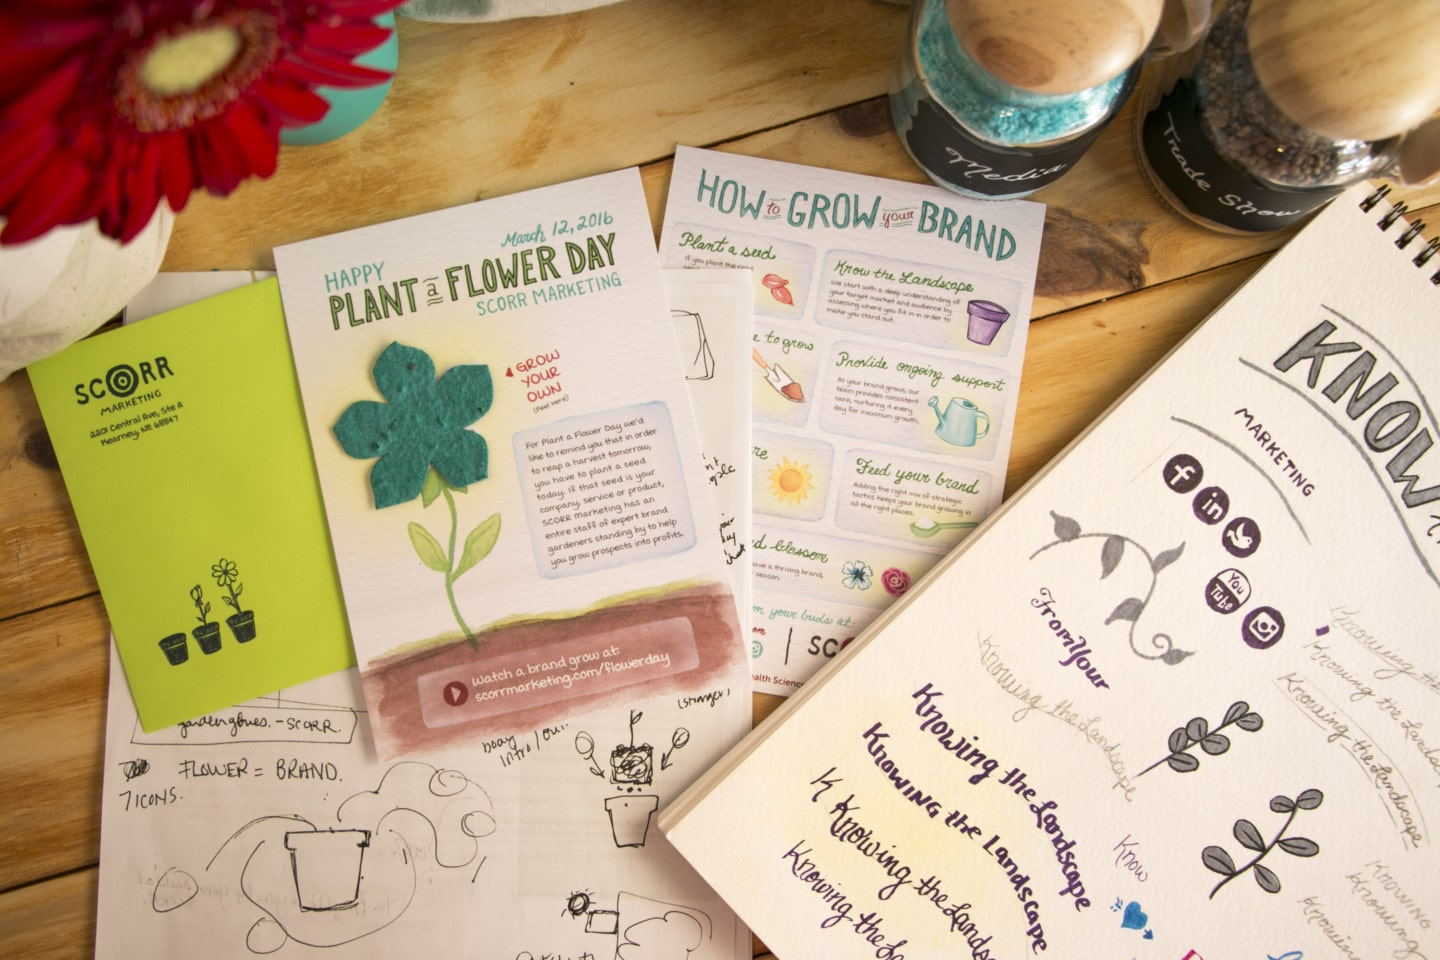 Plant a Flower Day mailer